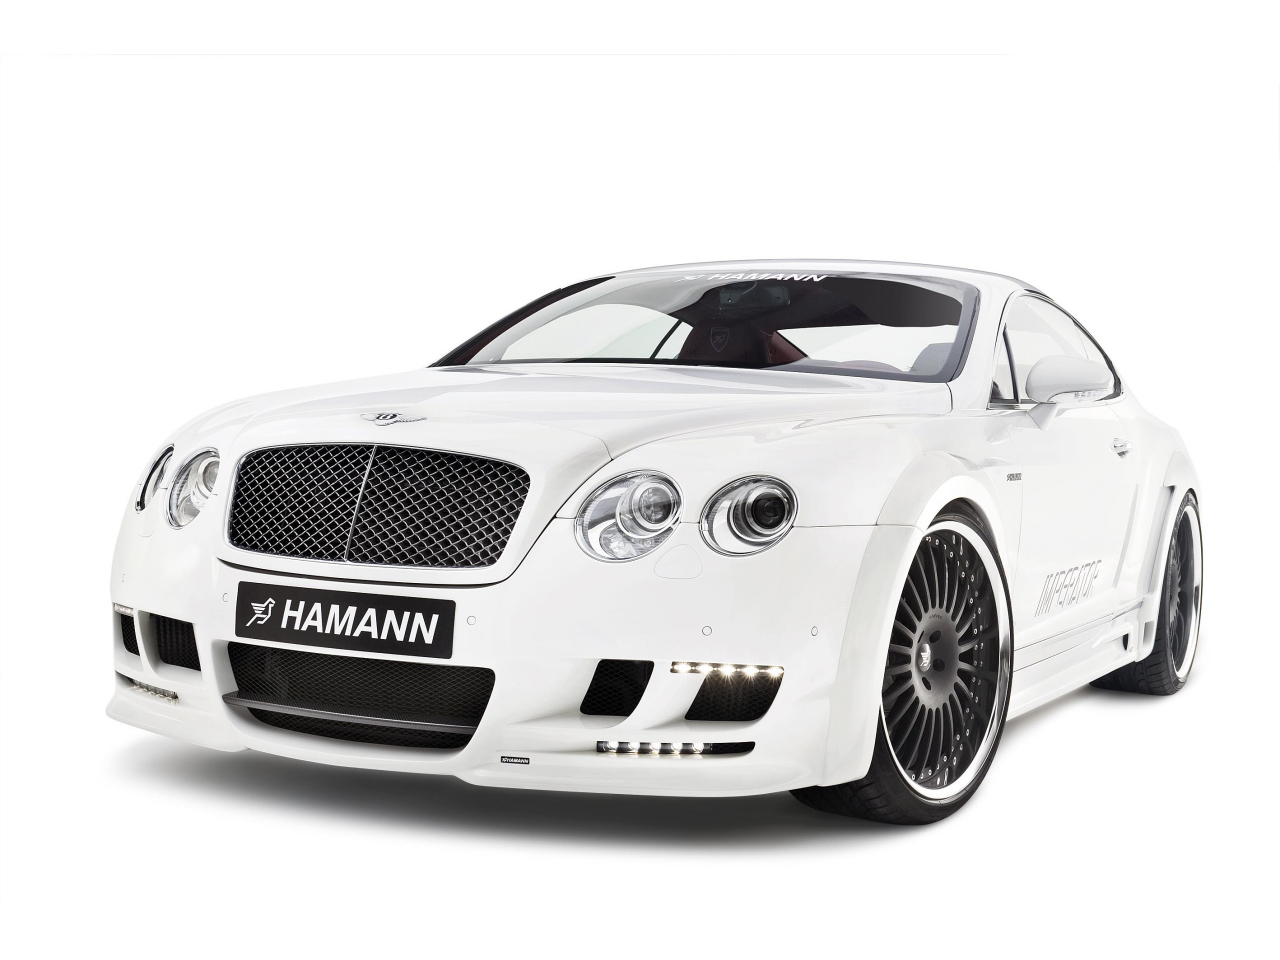 Bentley Continental 'Imperator' by Hamann Motorsport